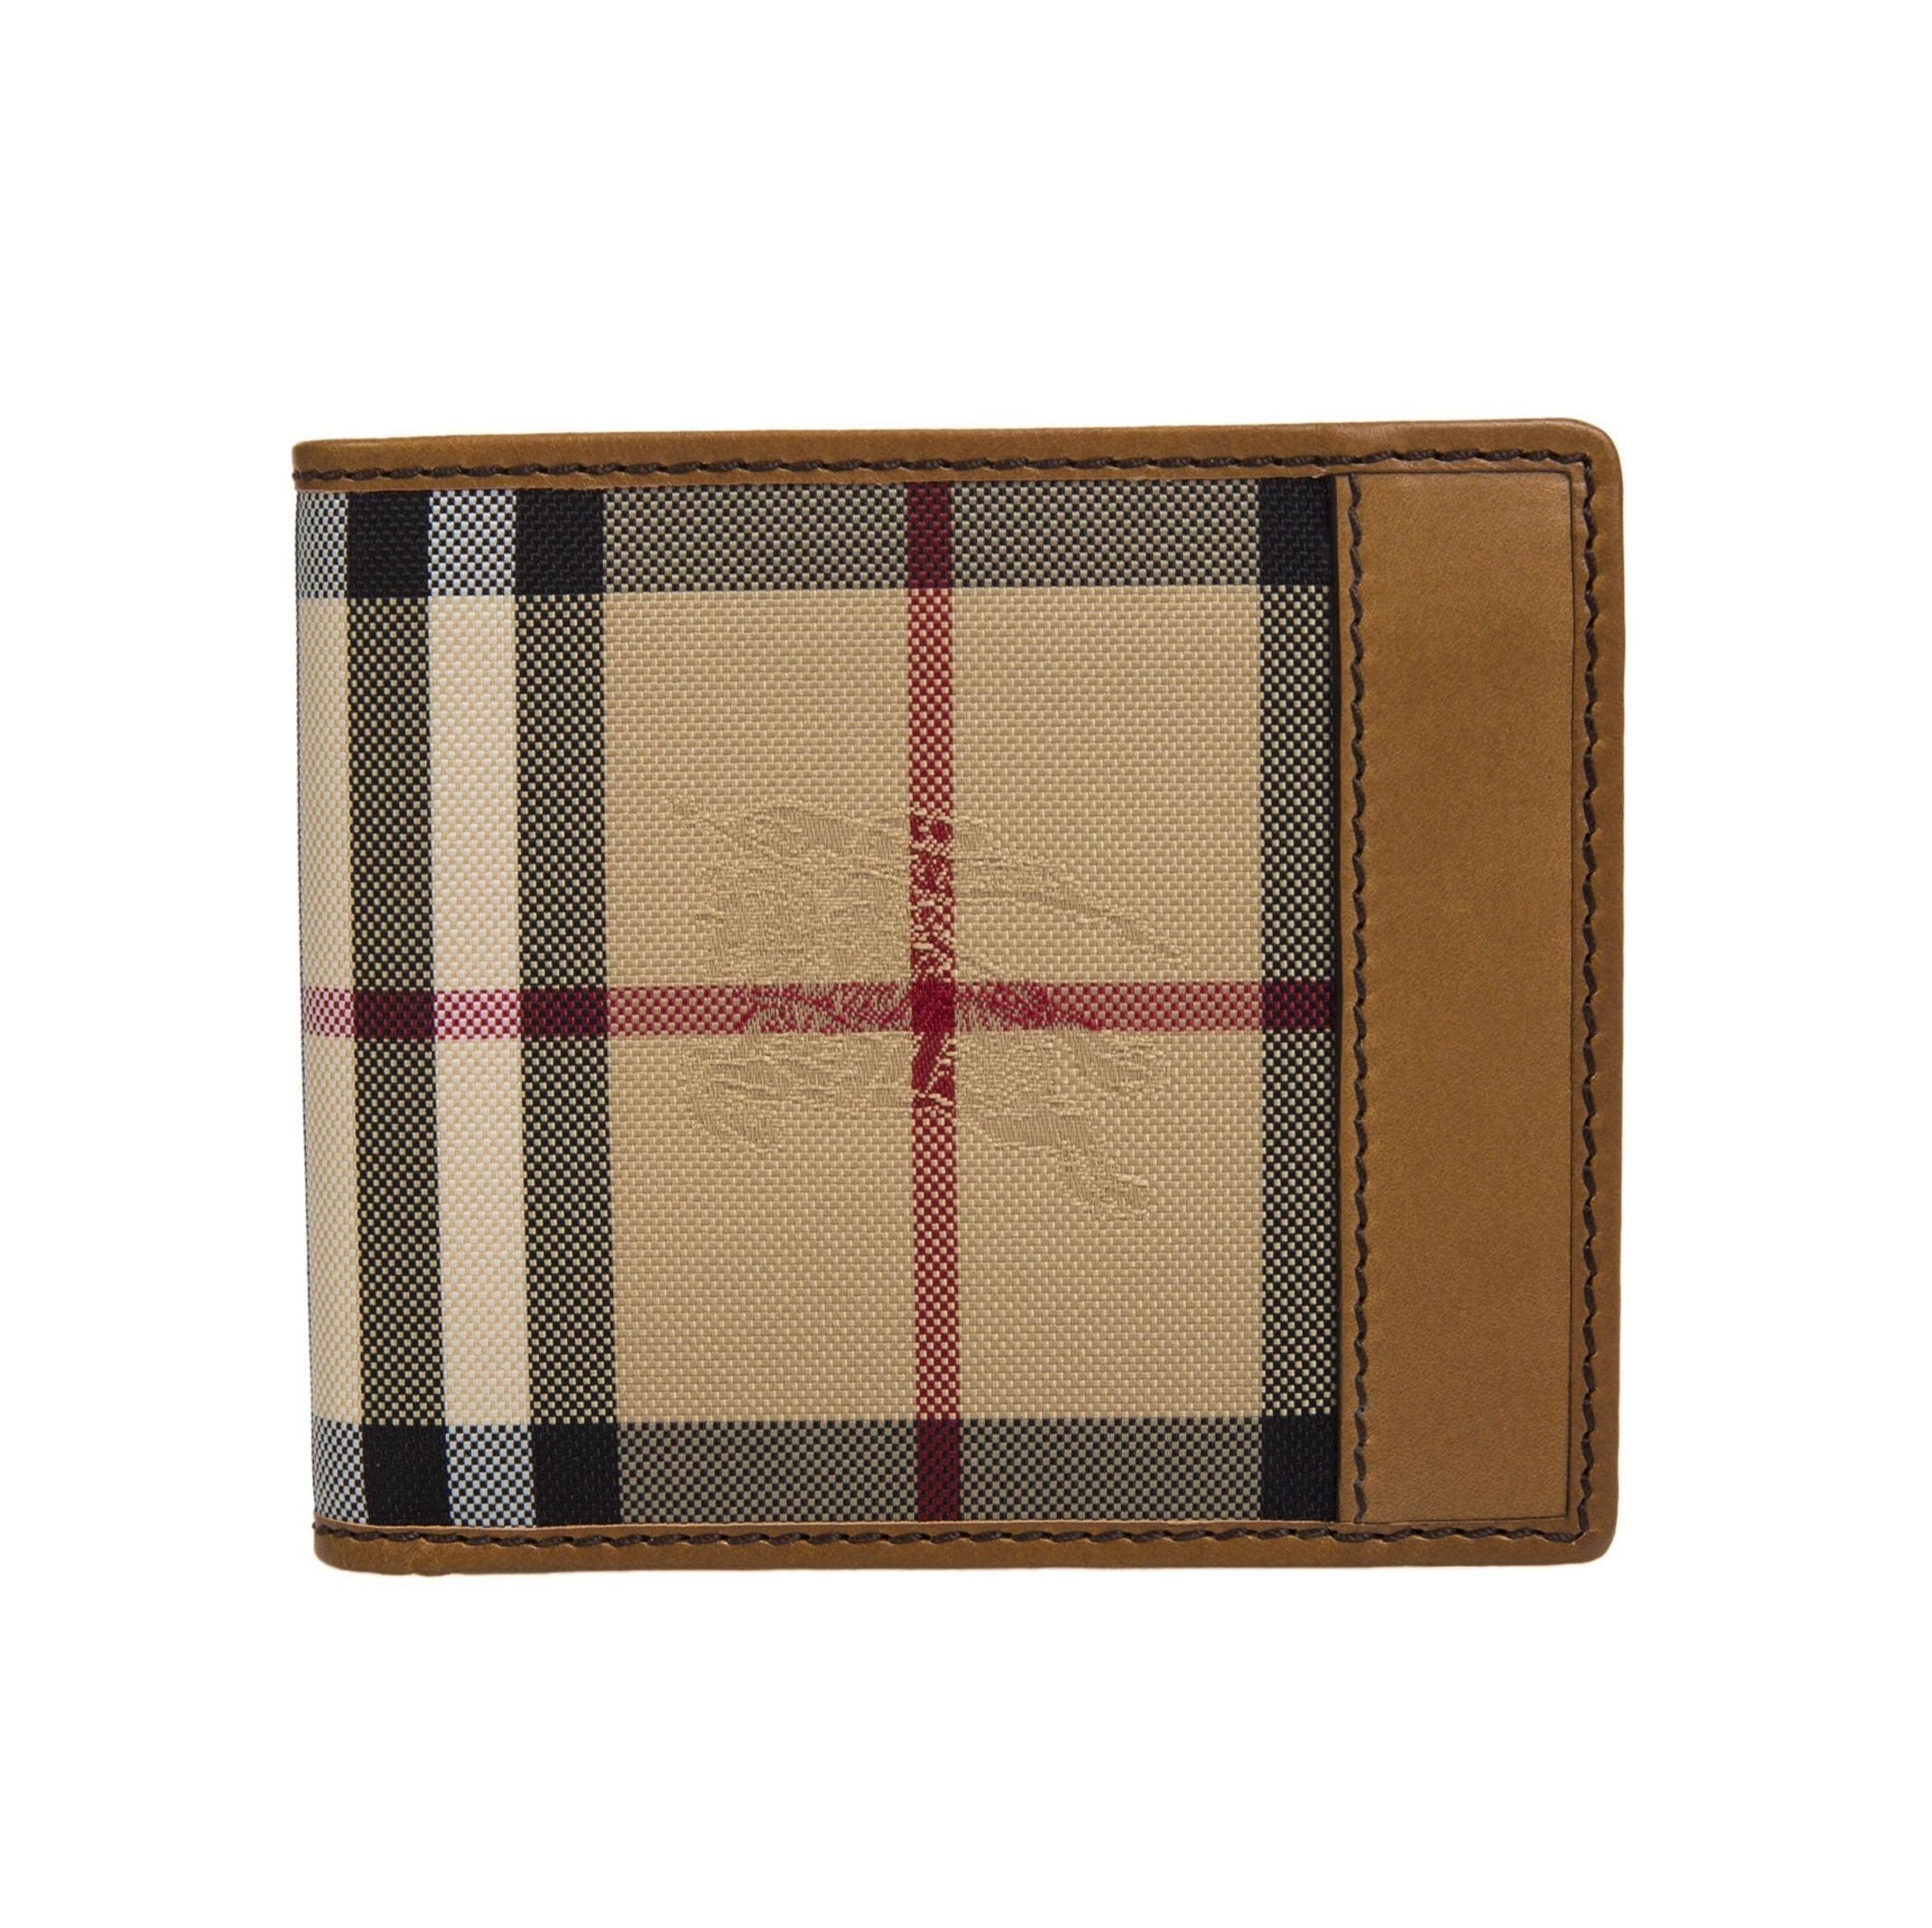 burberry brand audit Essays - largest database of quality sample essays and research papers on burberry brand audit.